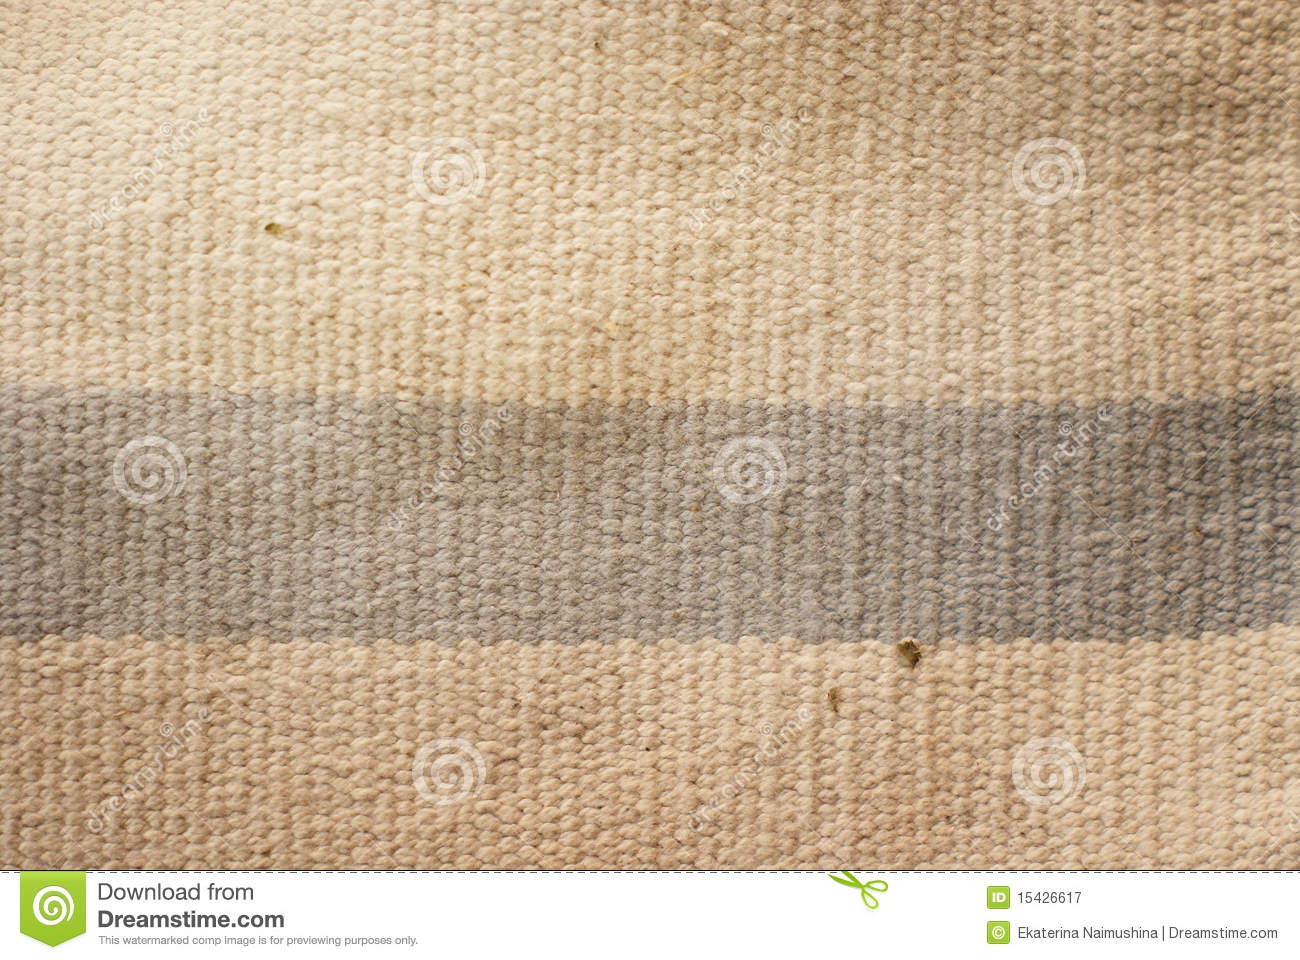 Old cotton rug